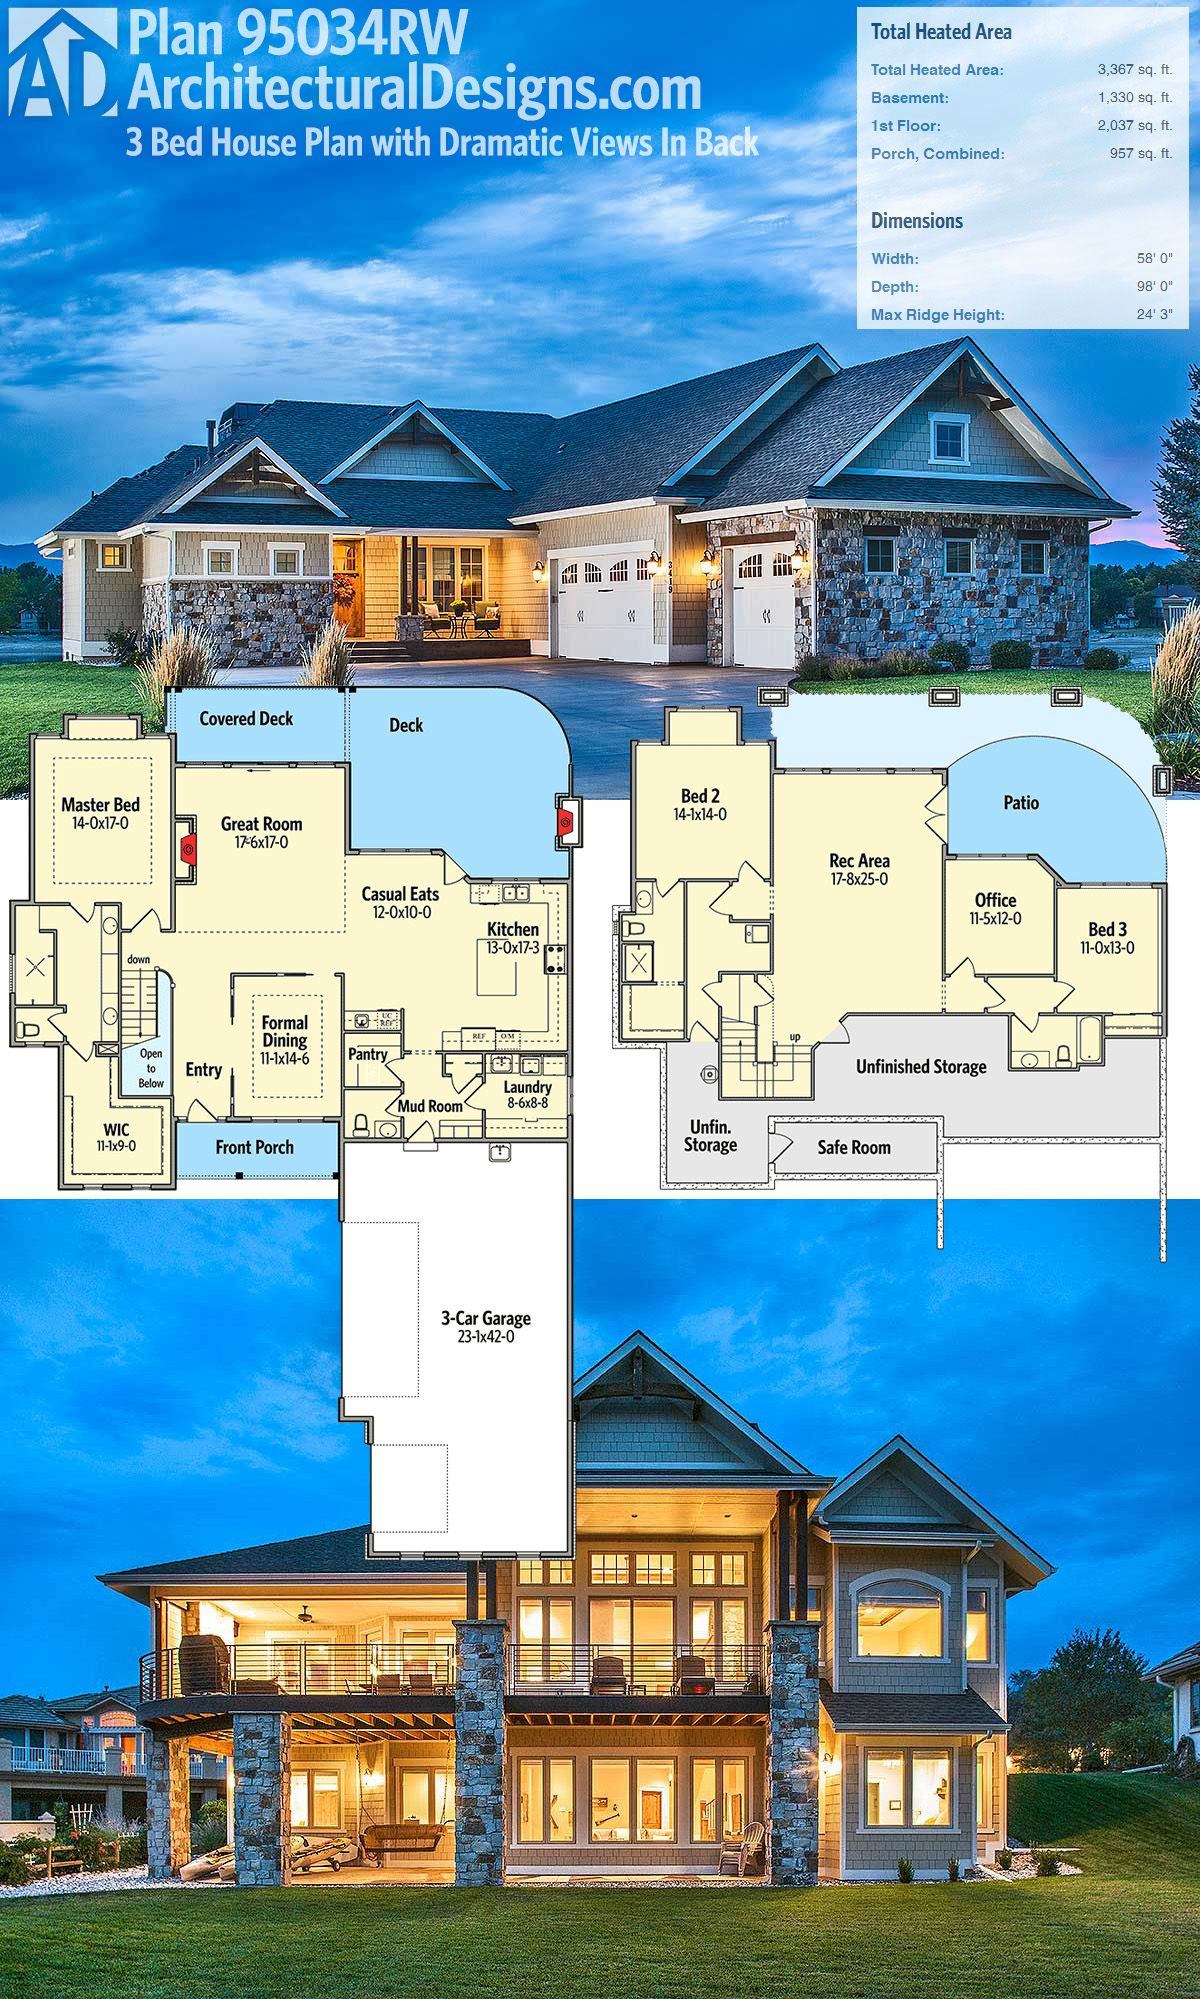 Patio Home House Plans Best Of Plan Rw Craftsman House Plan with Dramatic Views In